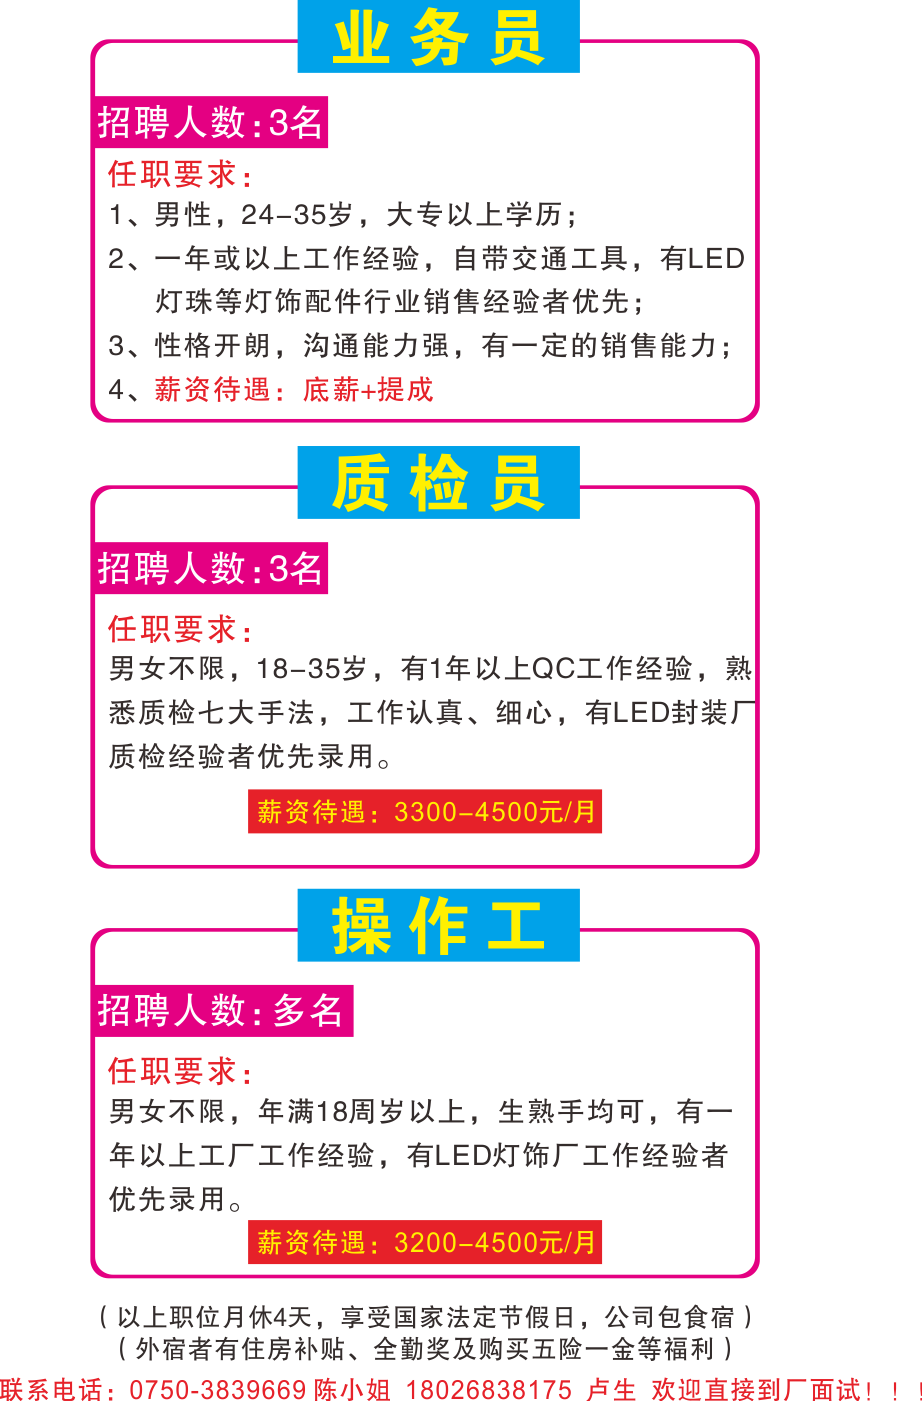 RECRUITMENTS 招聘广告-GUANGDONG LCLED LIGHTING CO., LTD.